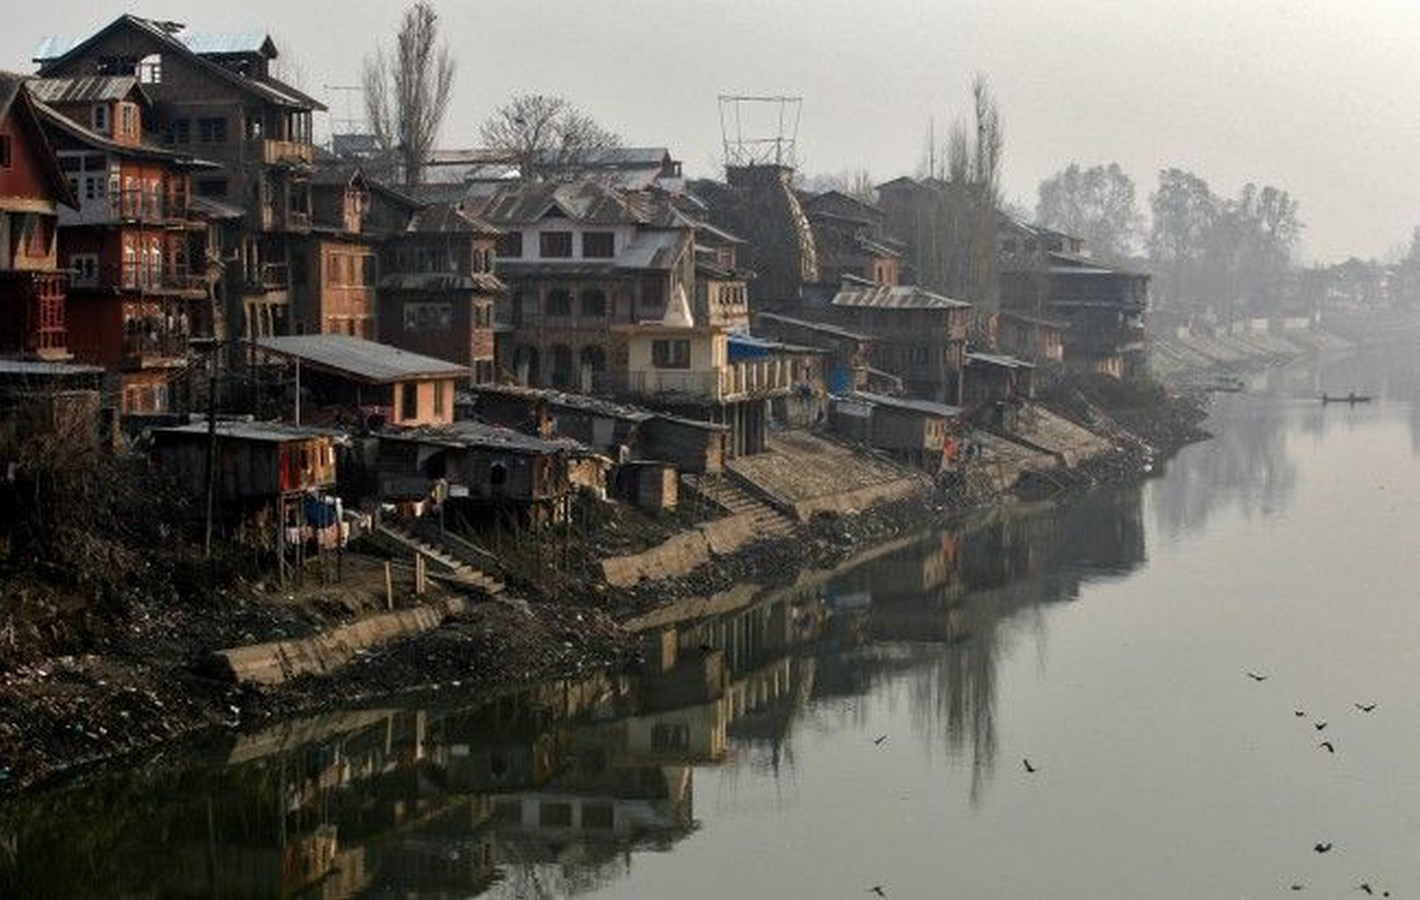 Architecture of Kashmir- Beauty amidst chaos - Sheet1